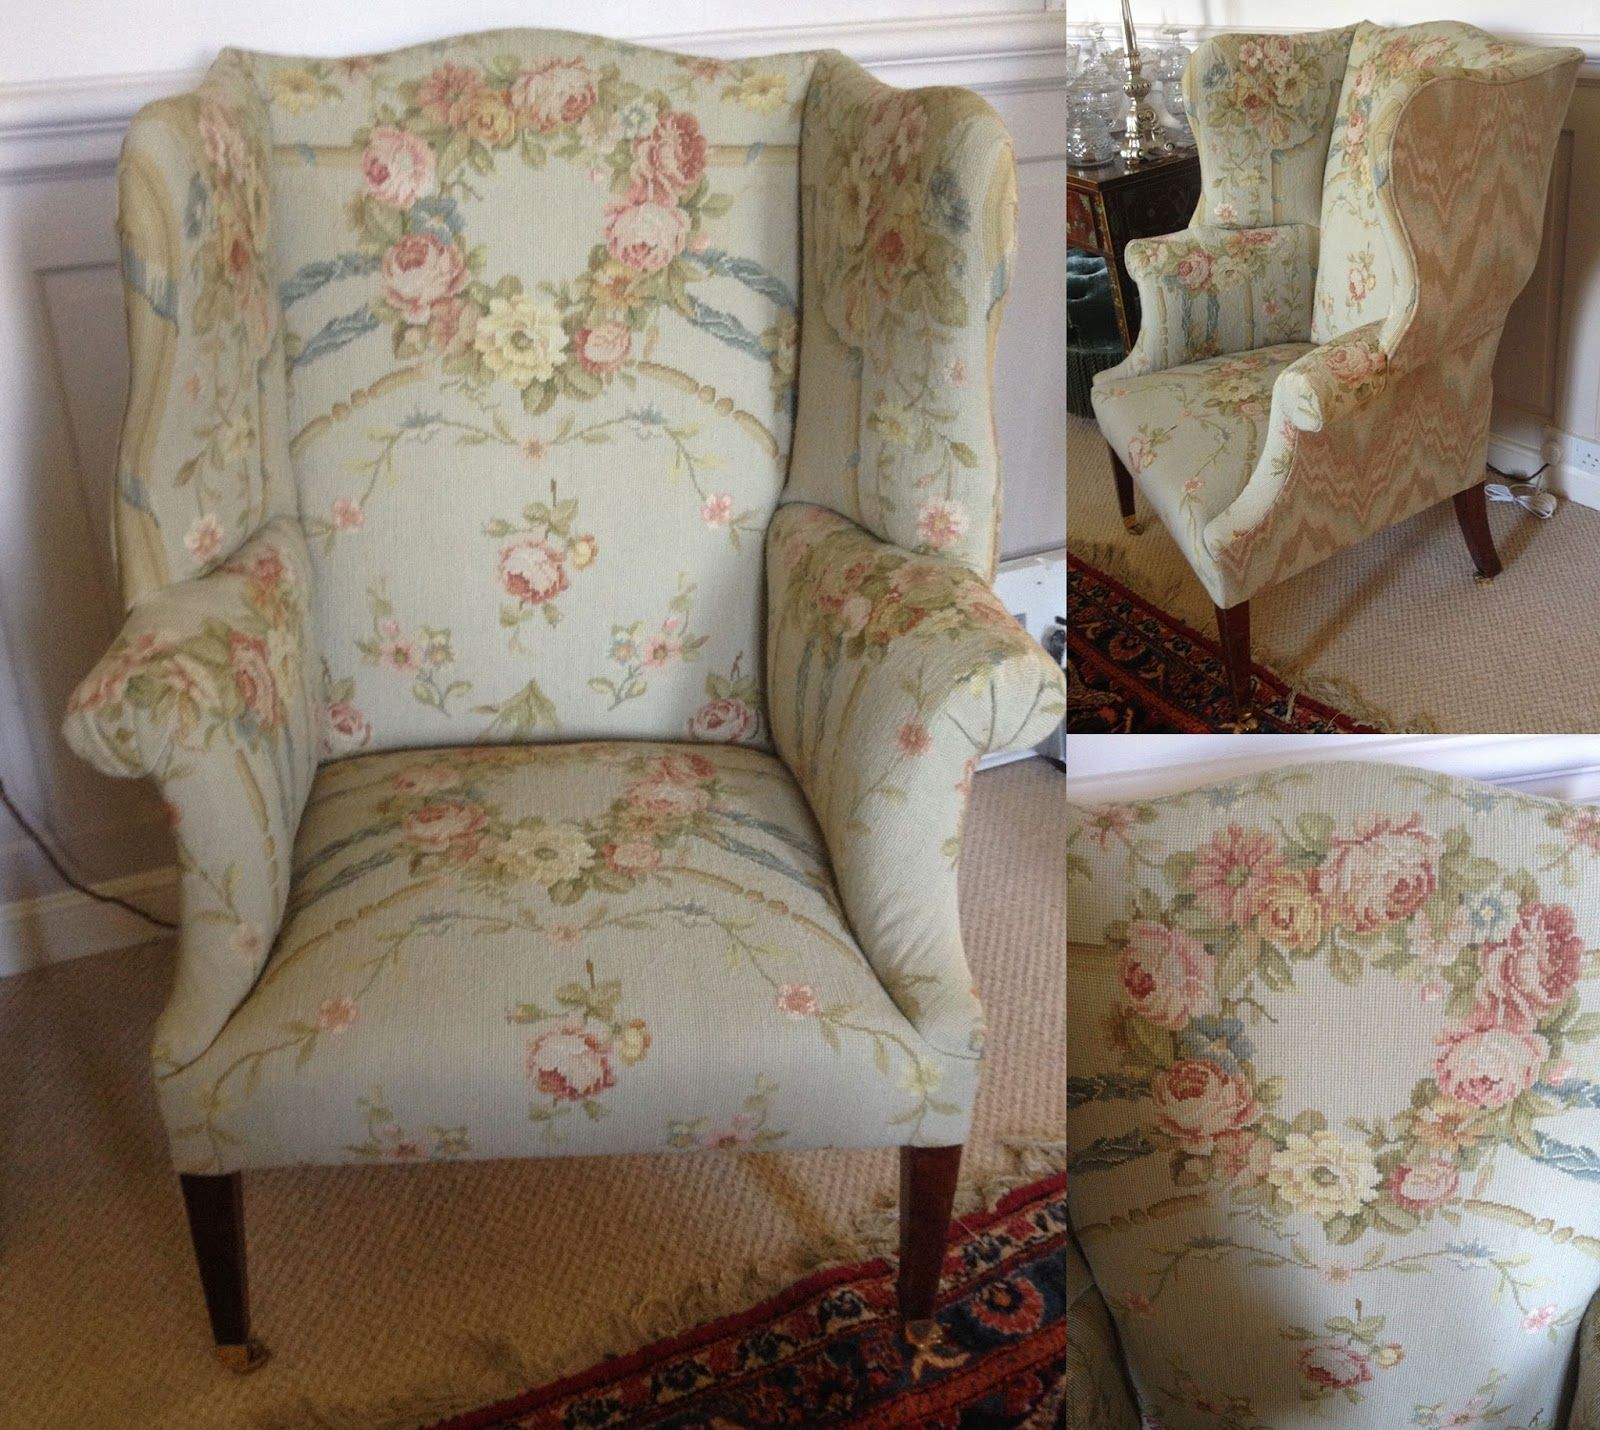 Chair covered in French Aubusson rug - The Painted Room | home decor